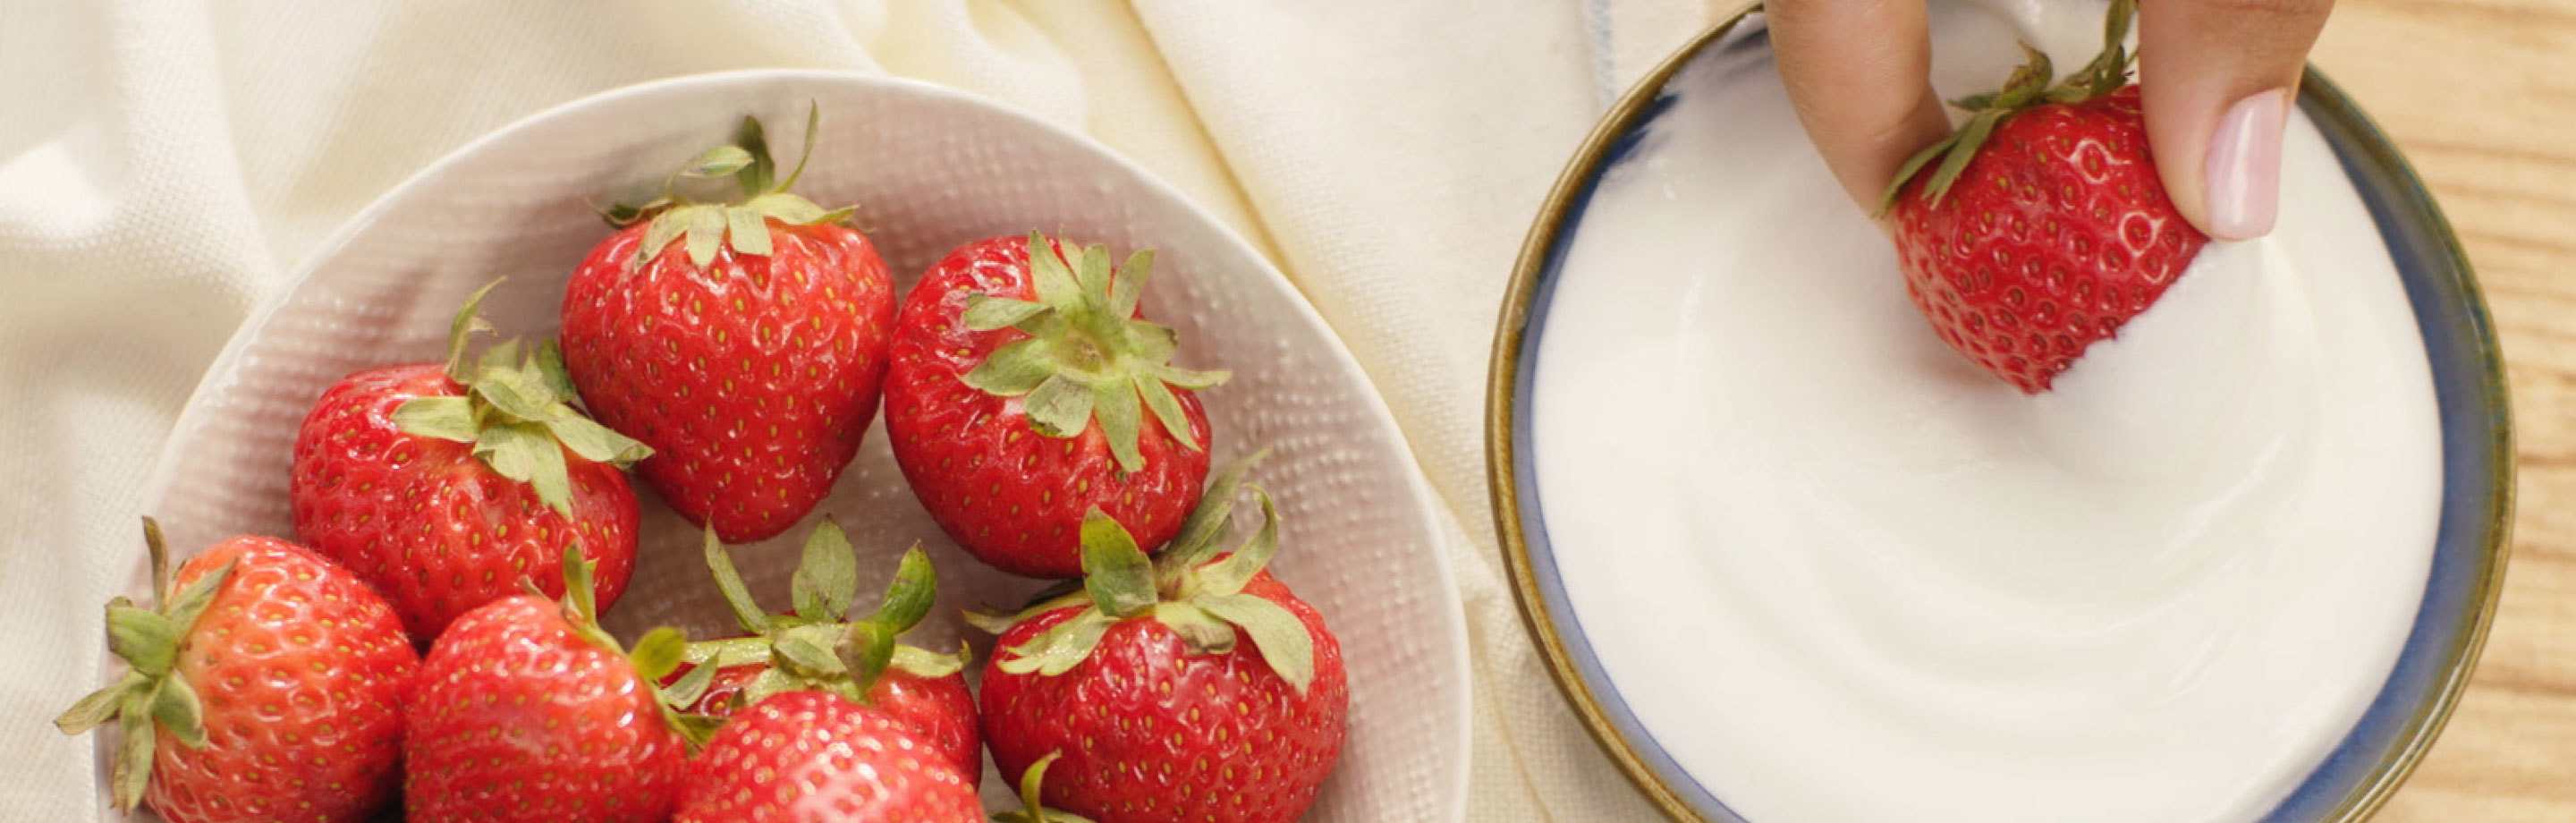 Bowl of strawberries next to cream cheese fruit dip